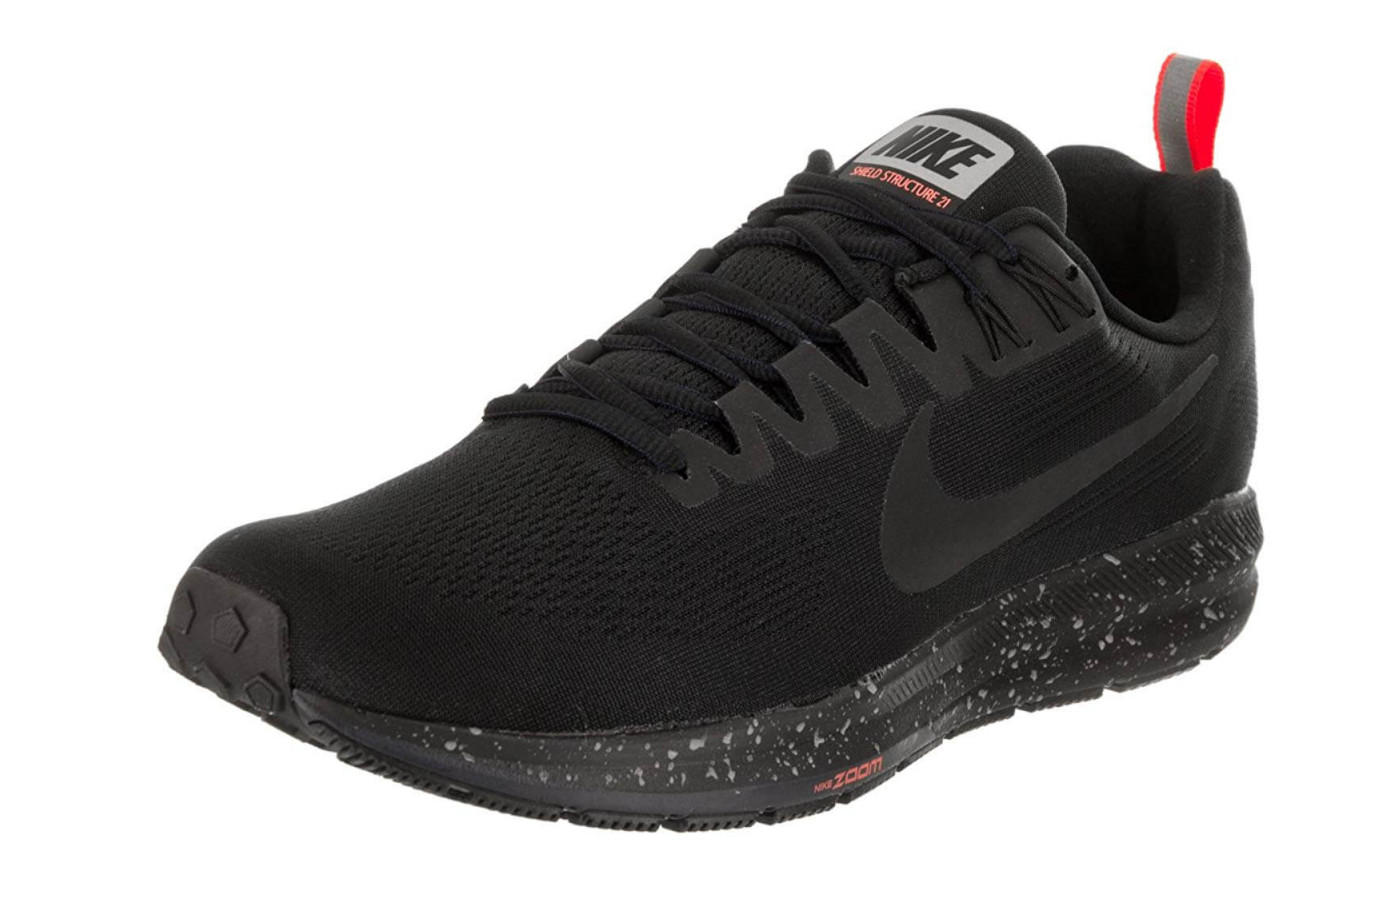 2c3b9ec7b162 Nike Air Zoom Structure 21 Shield comes in two colors ...